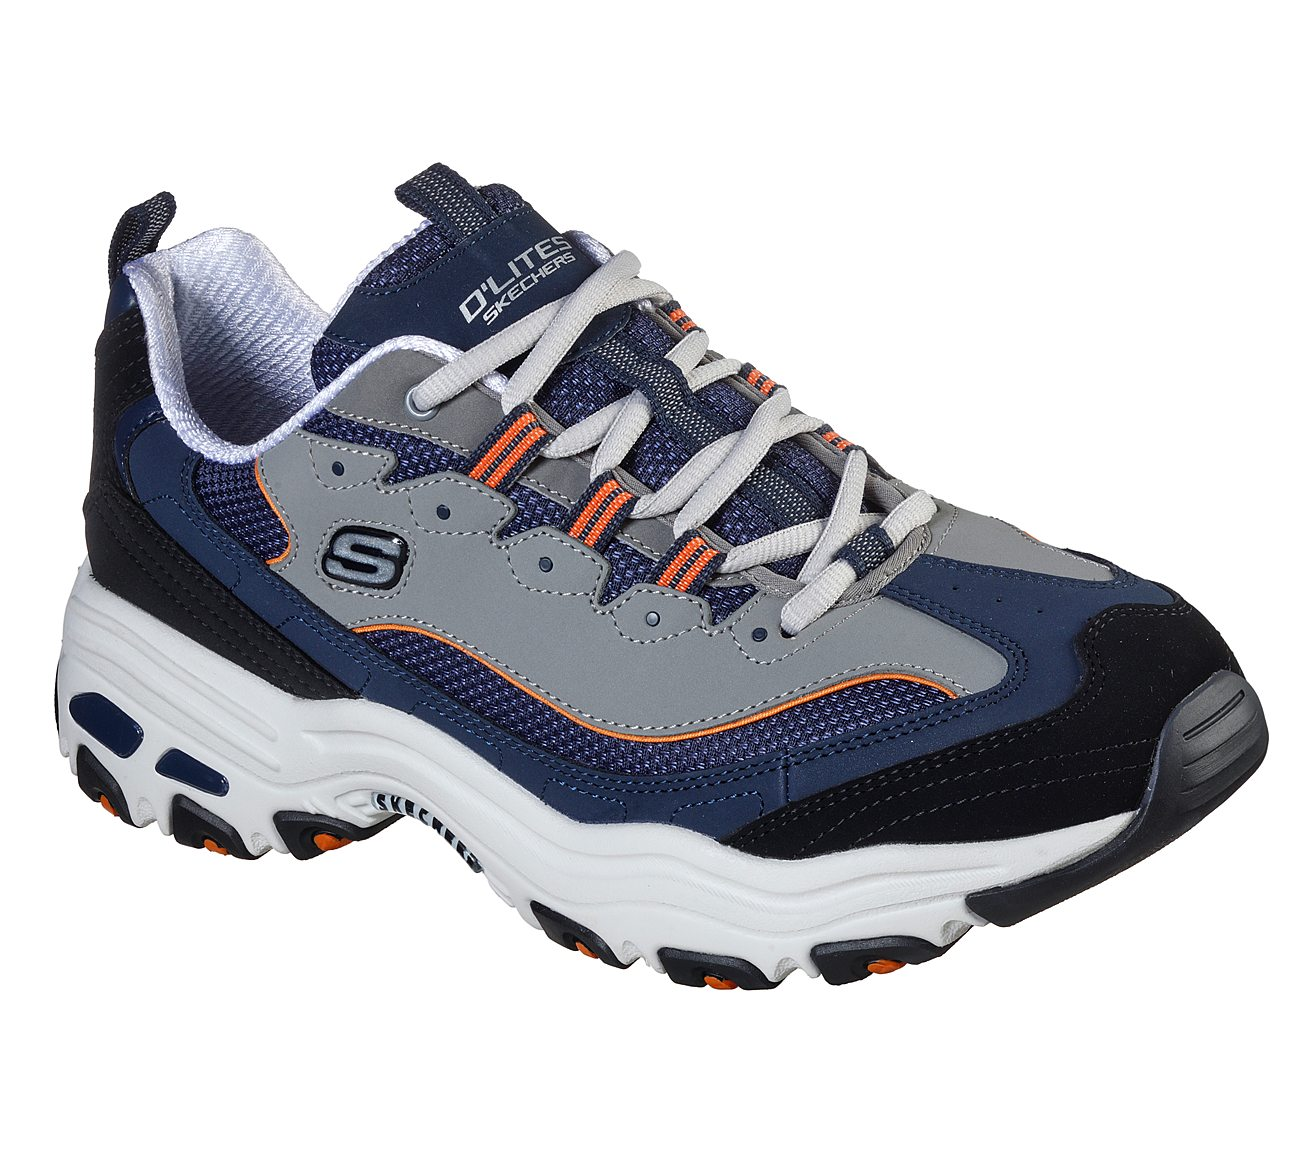 45fdb1cf28e5 Buy SKECHERS D Lites D Lites Shoes only  70.00